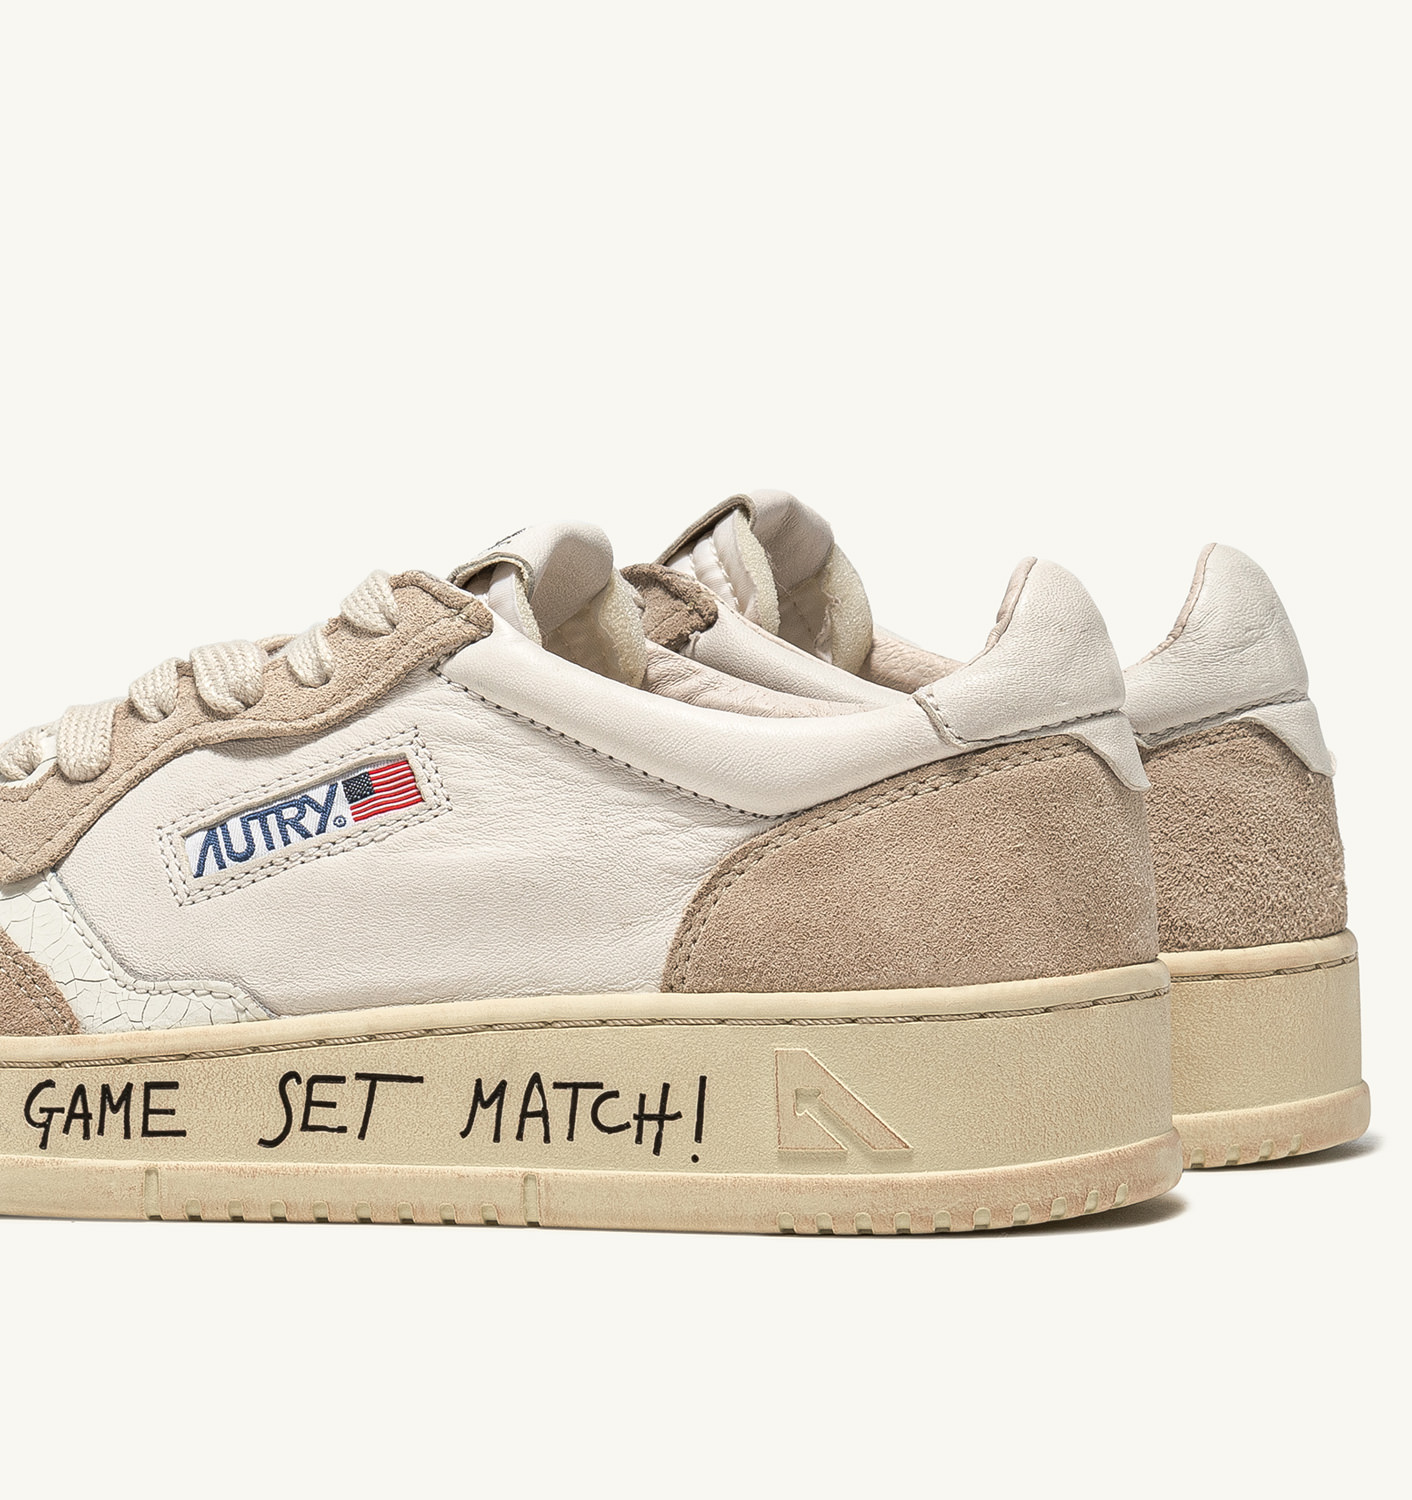 AUTRY: AUTRY SNEAKERS MEDALIST LOW IN PELLE E SUEDE BIANCO